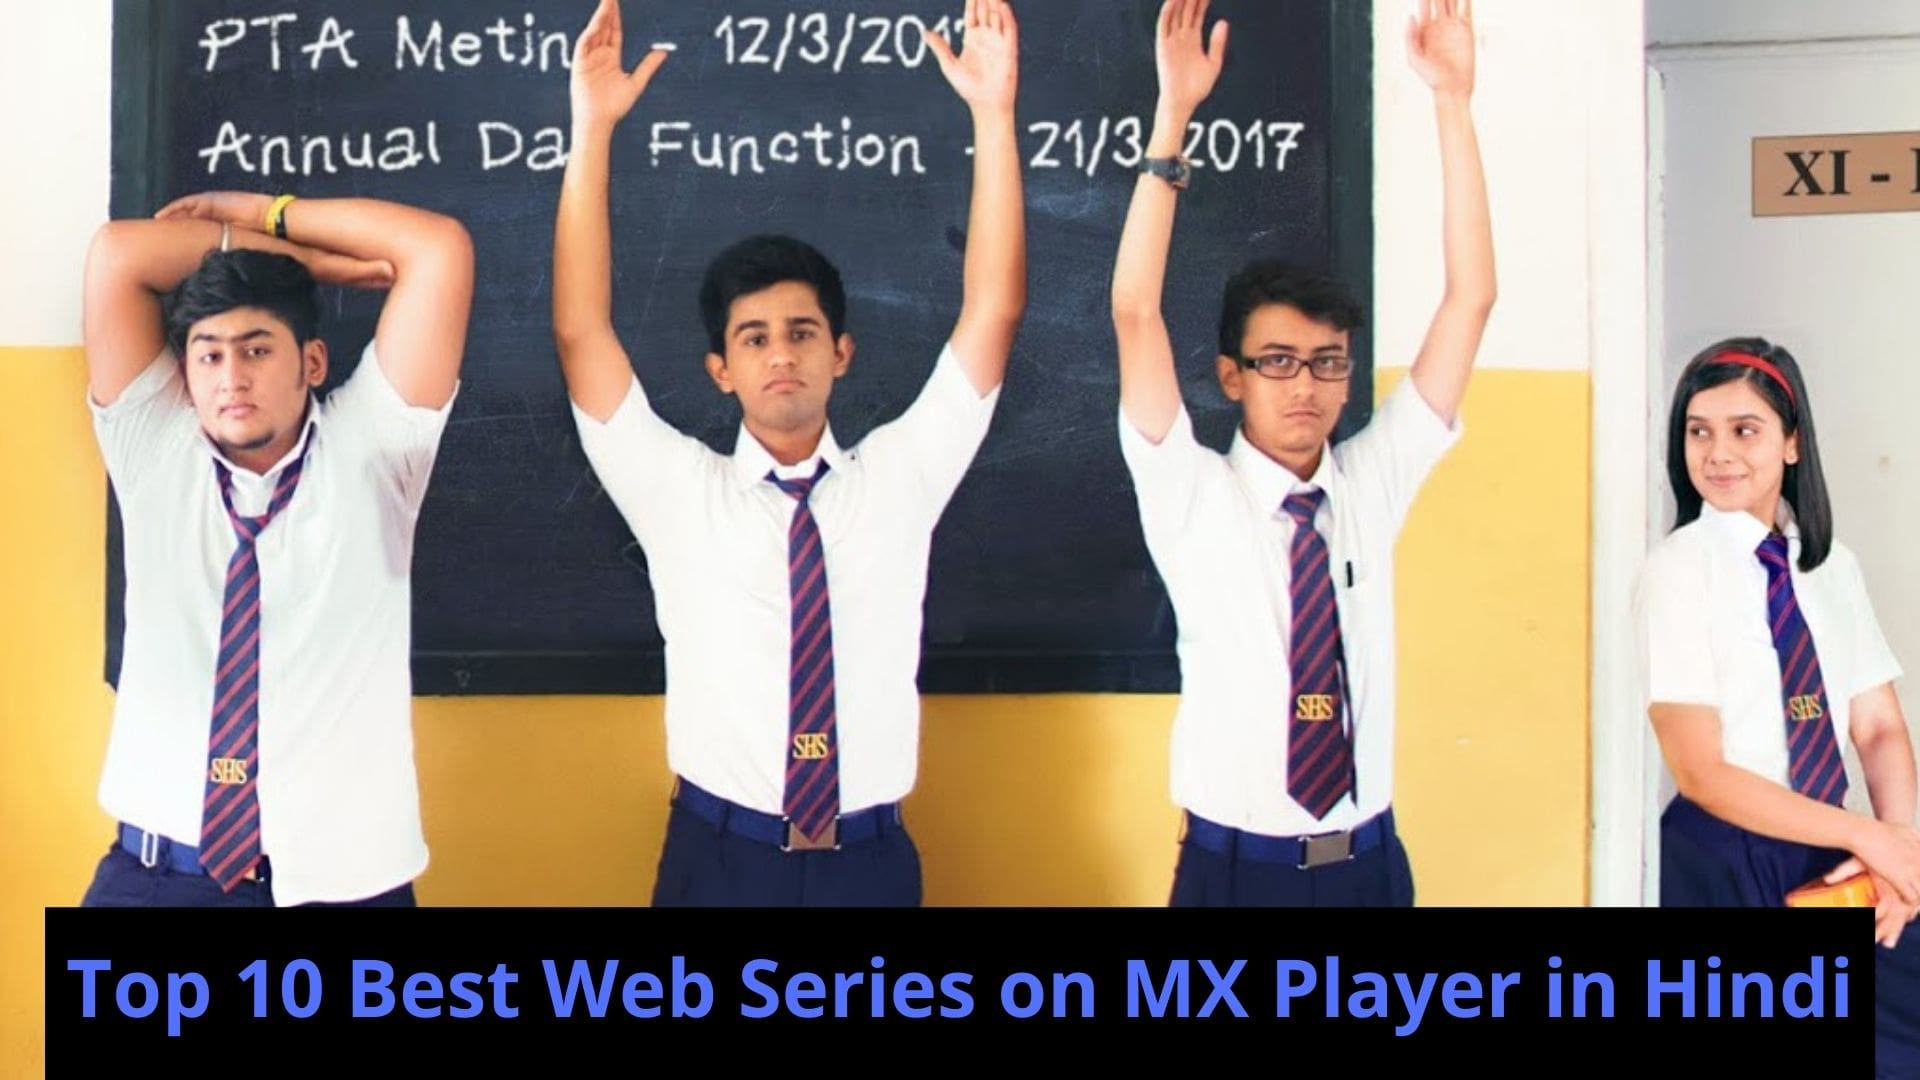 Top 10 Best Web Series on MX Player in Hindi